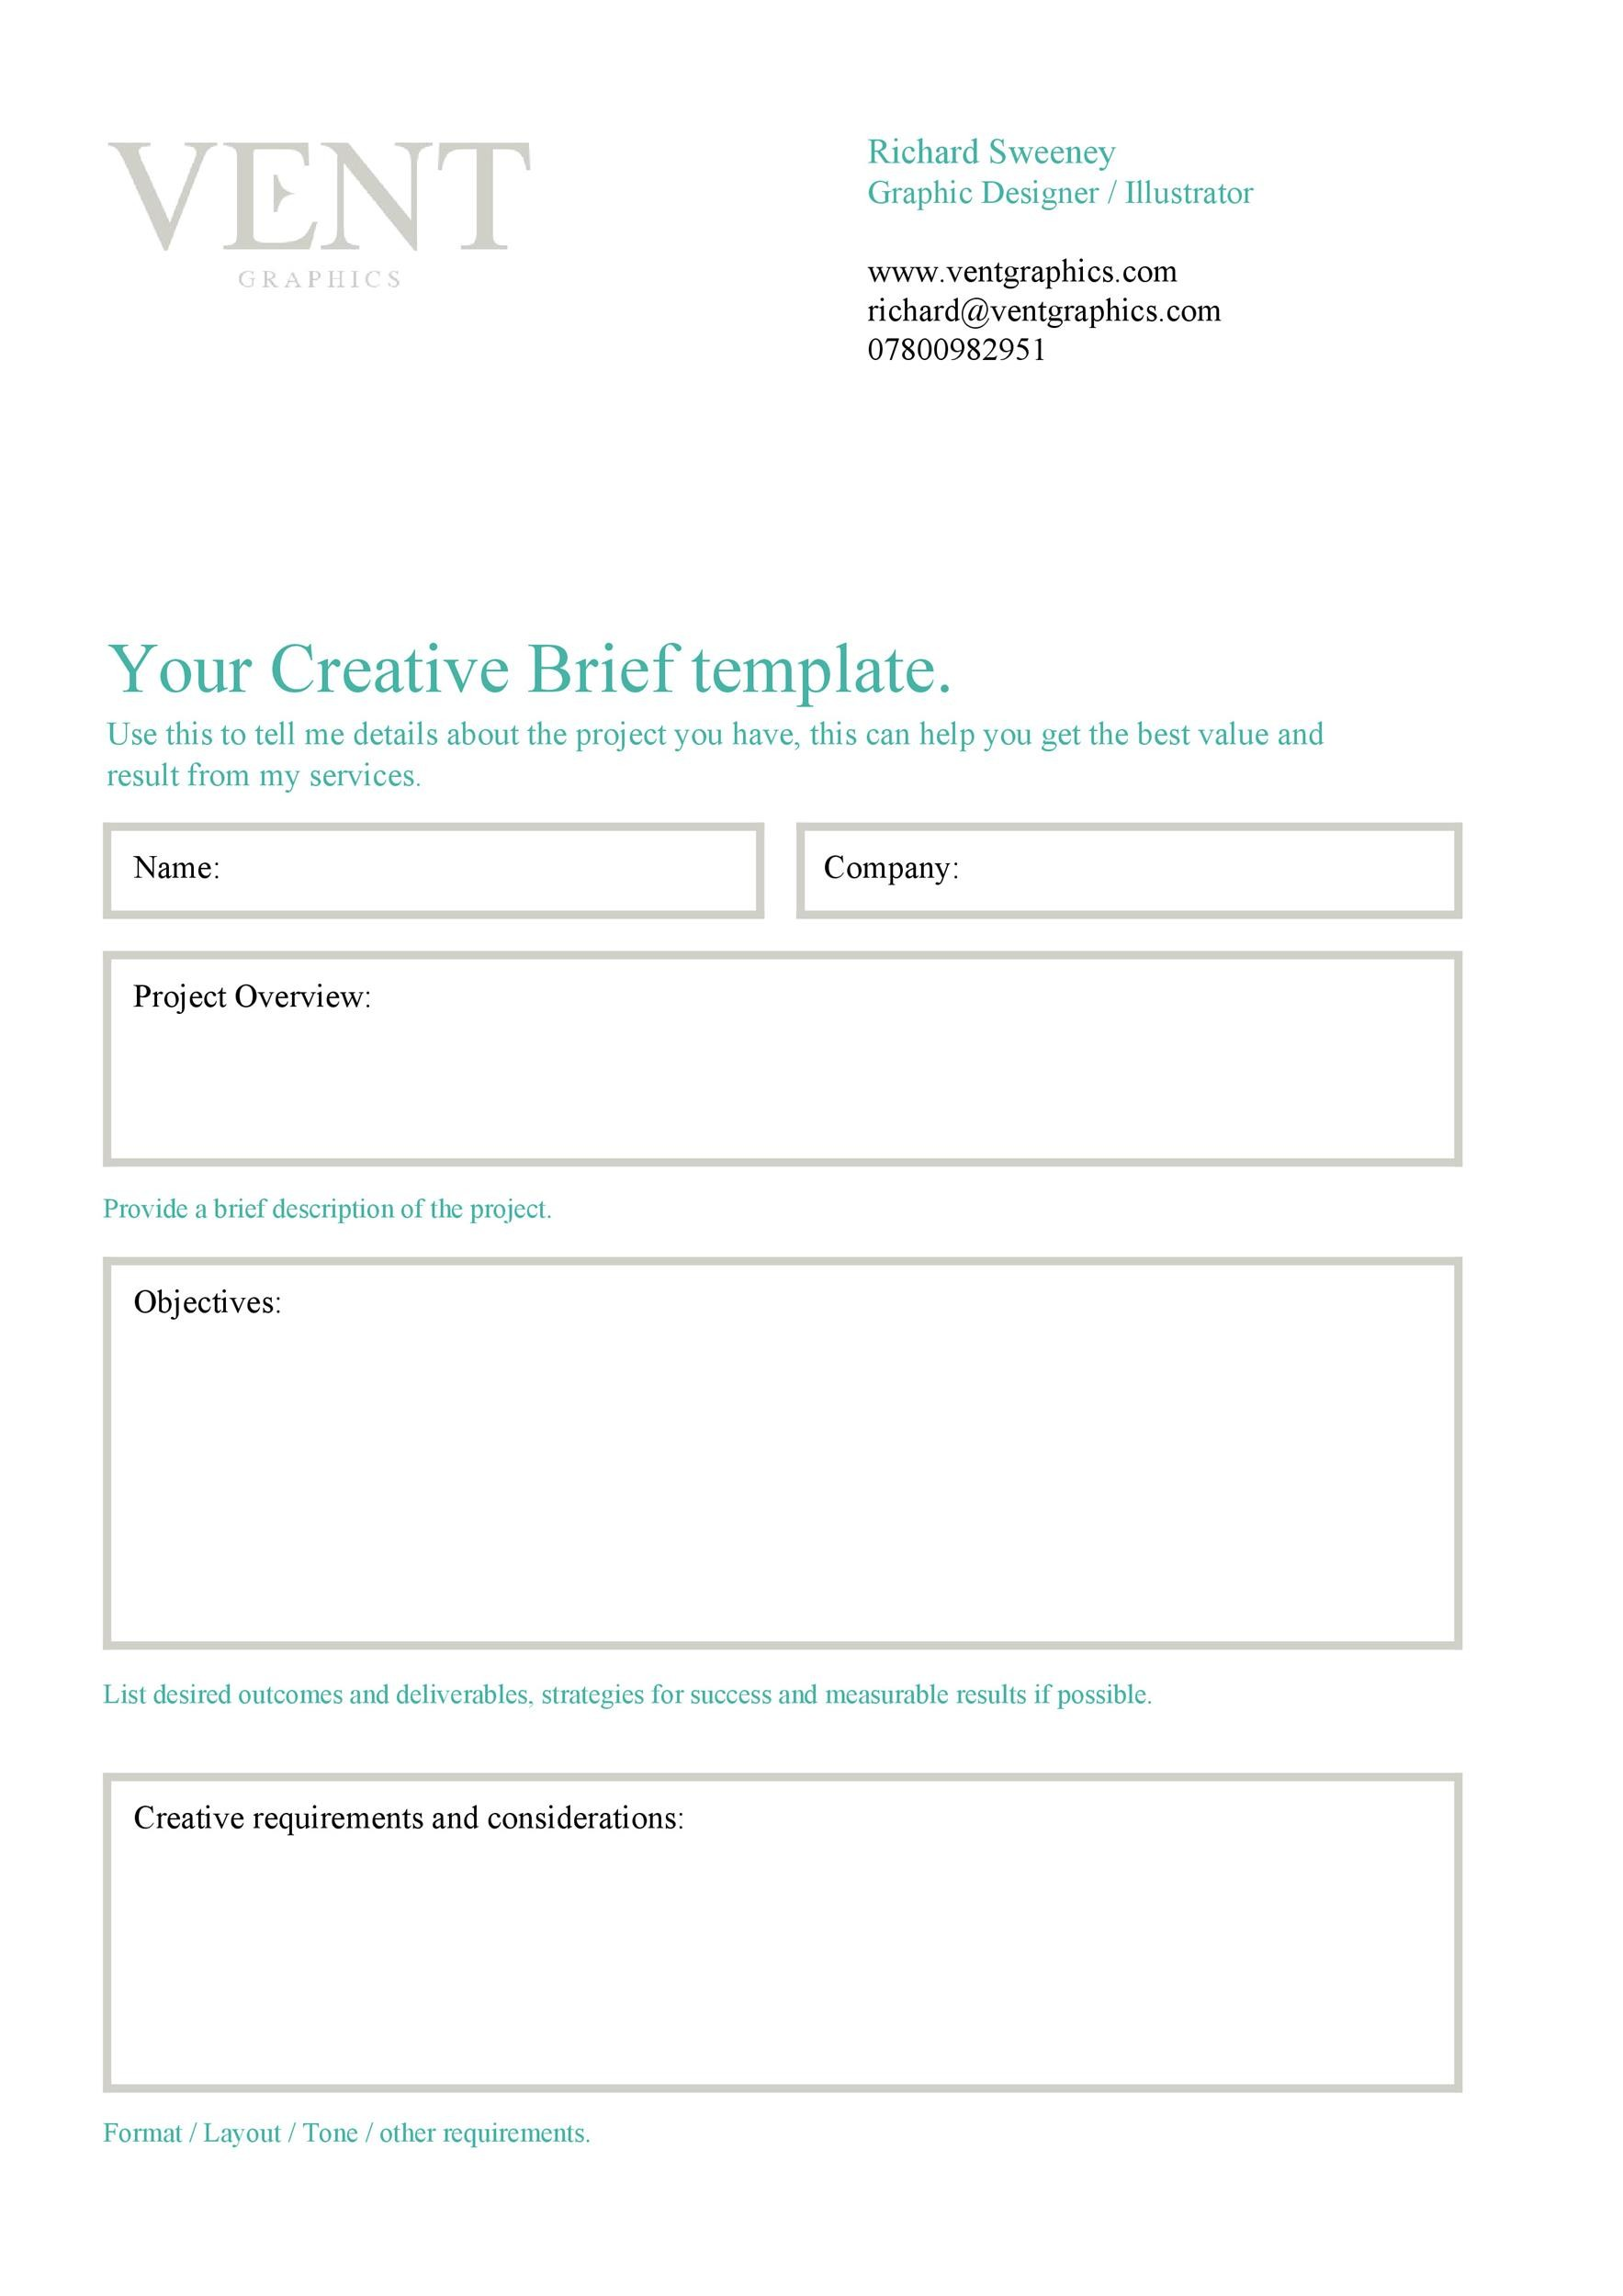 Free Creative Brief Template 11